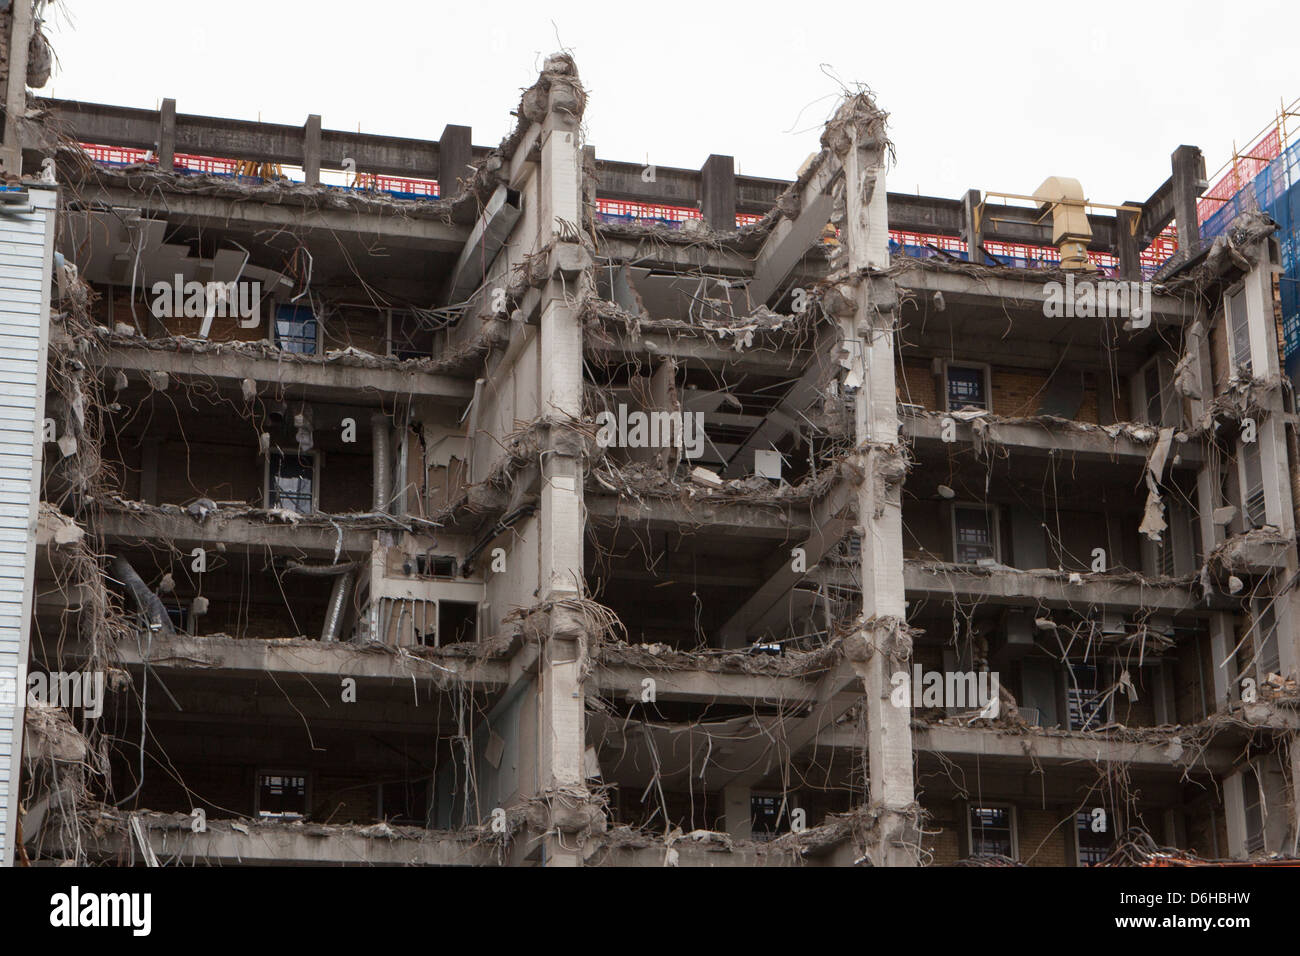 A building is half way thru demolition leaving exposed internals - Stock Image